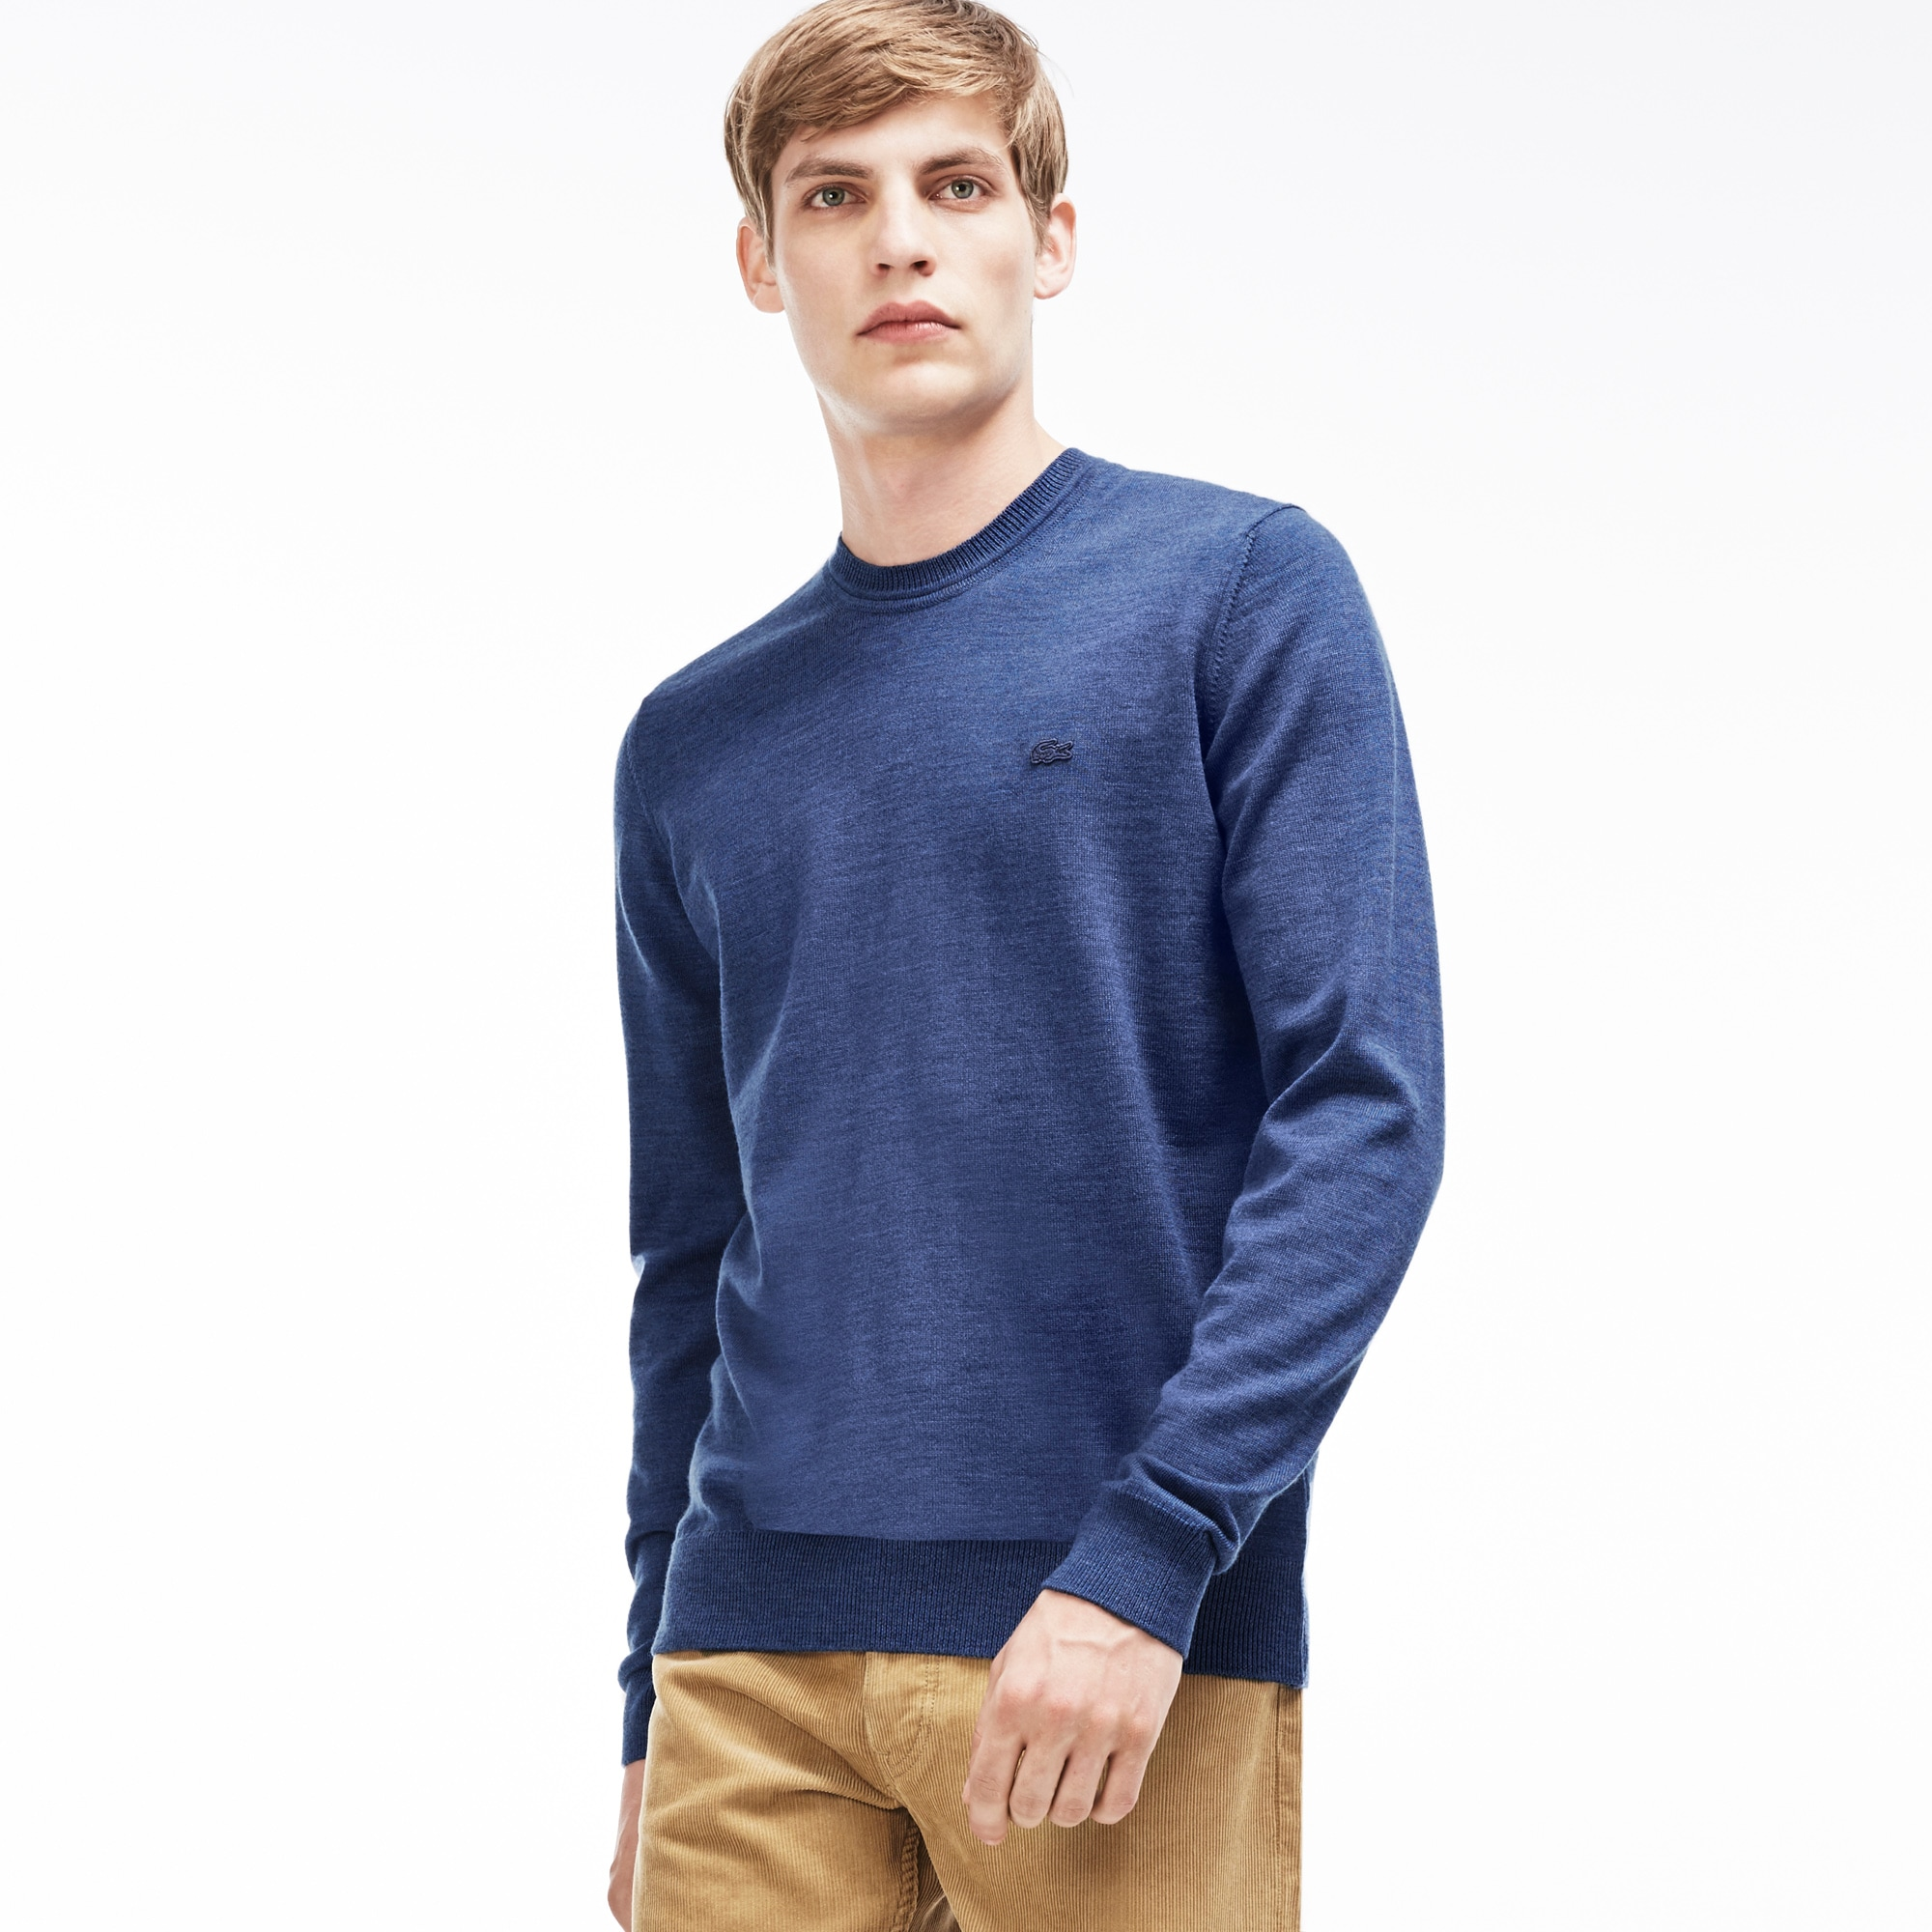 Men's Crew Neck Wool Jersey Sweater